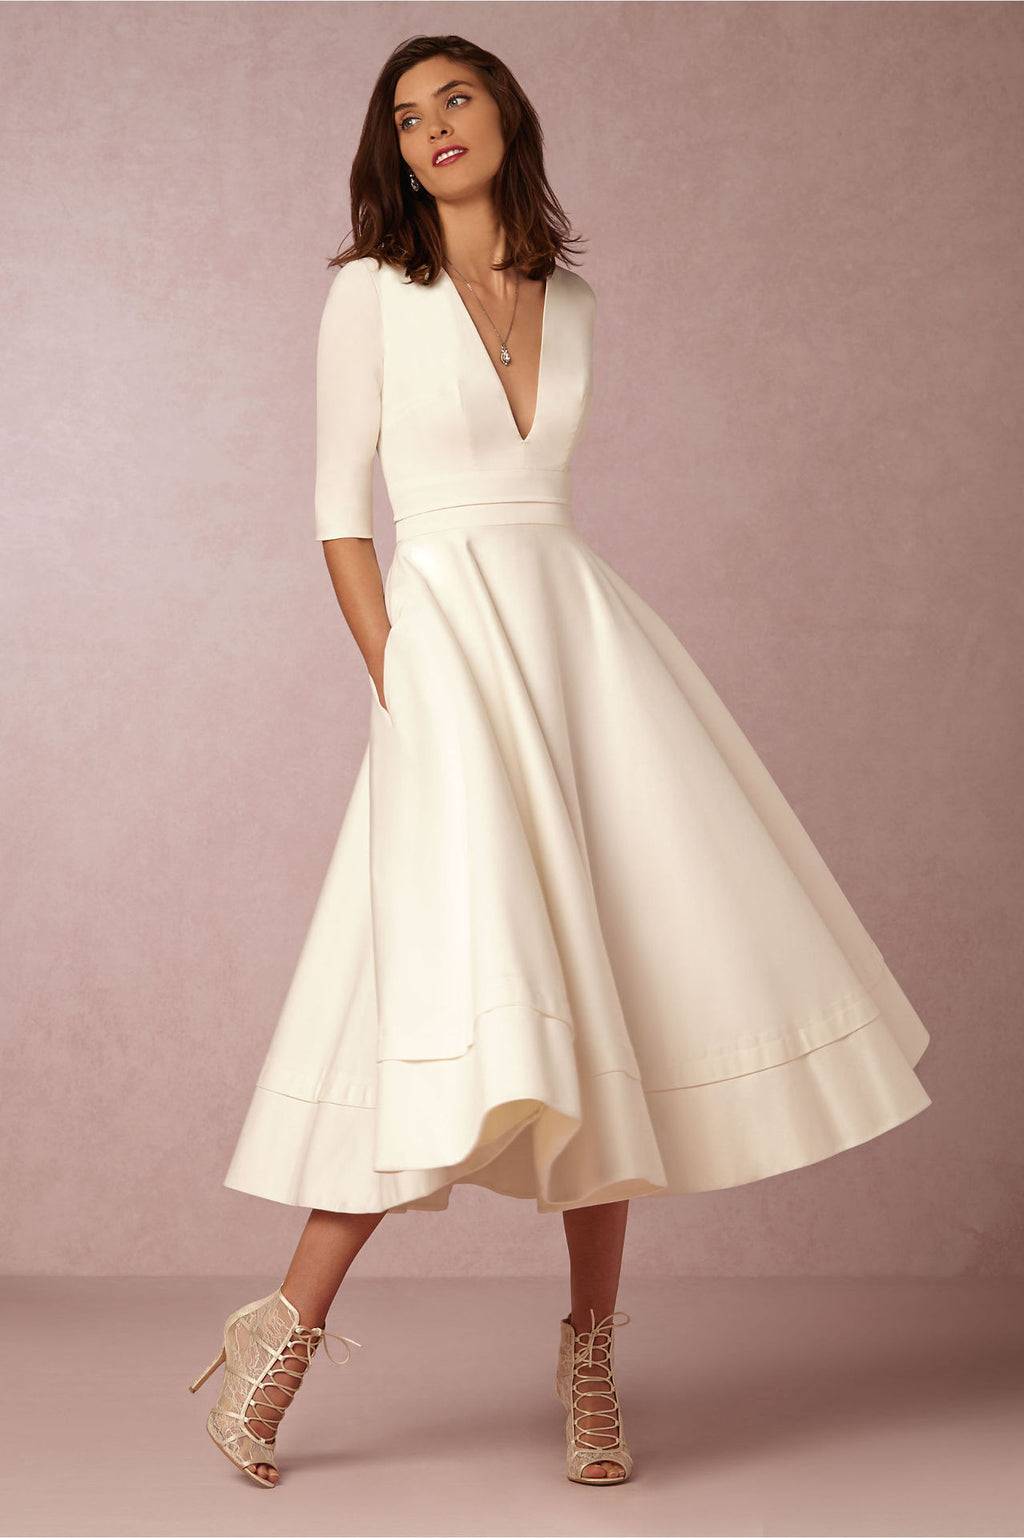 V-neck 3/4 Sleeves Solid High-waist Pleated Long Party Dress